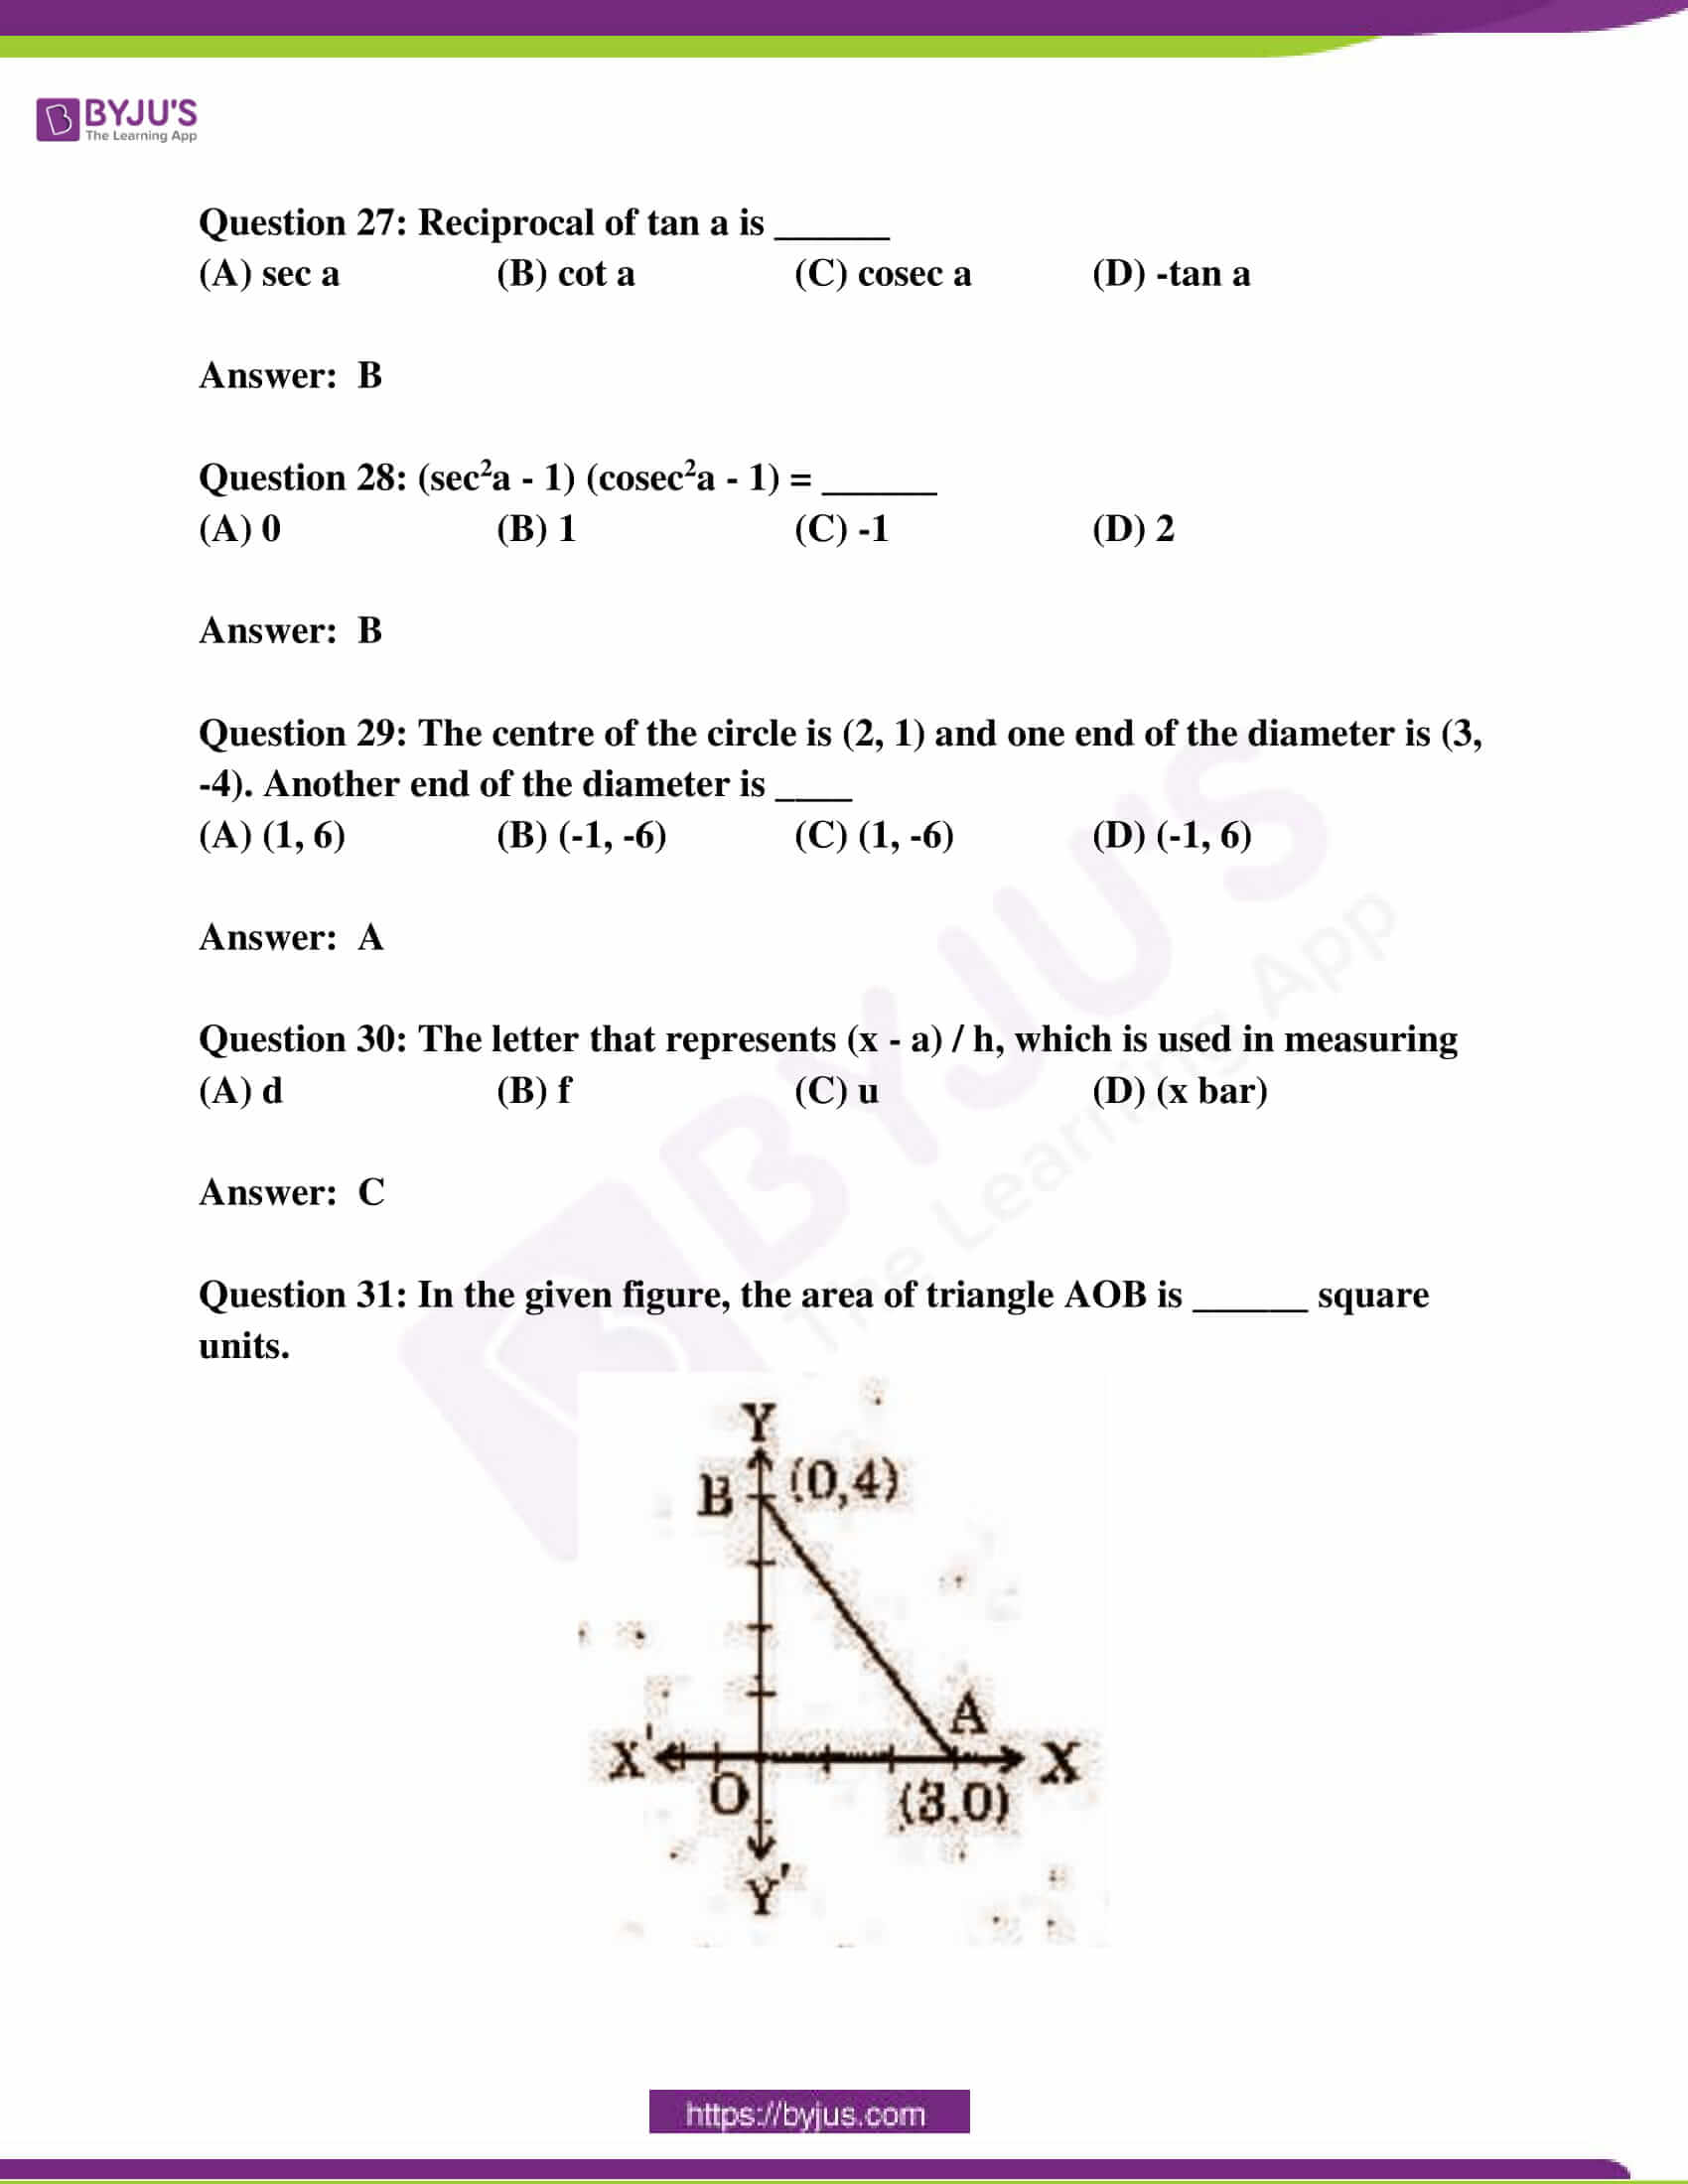 ap class 10 maths question paper 2 sol march 2019 13